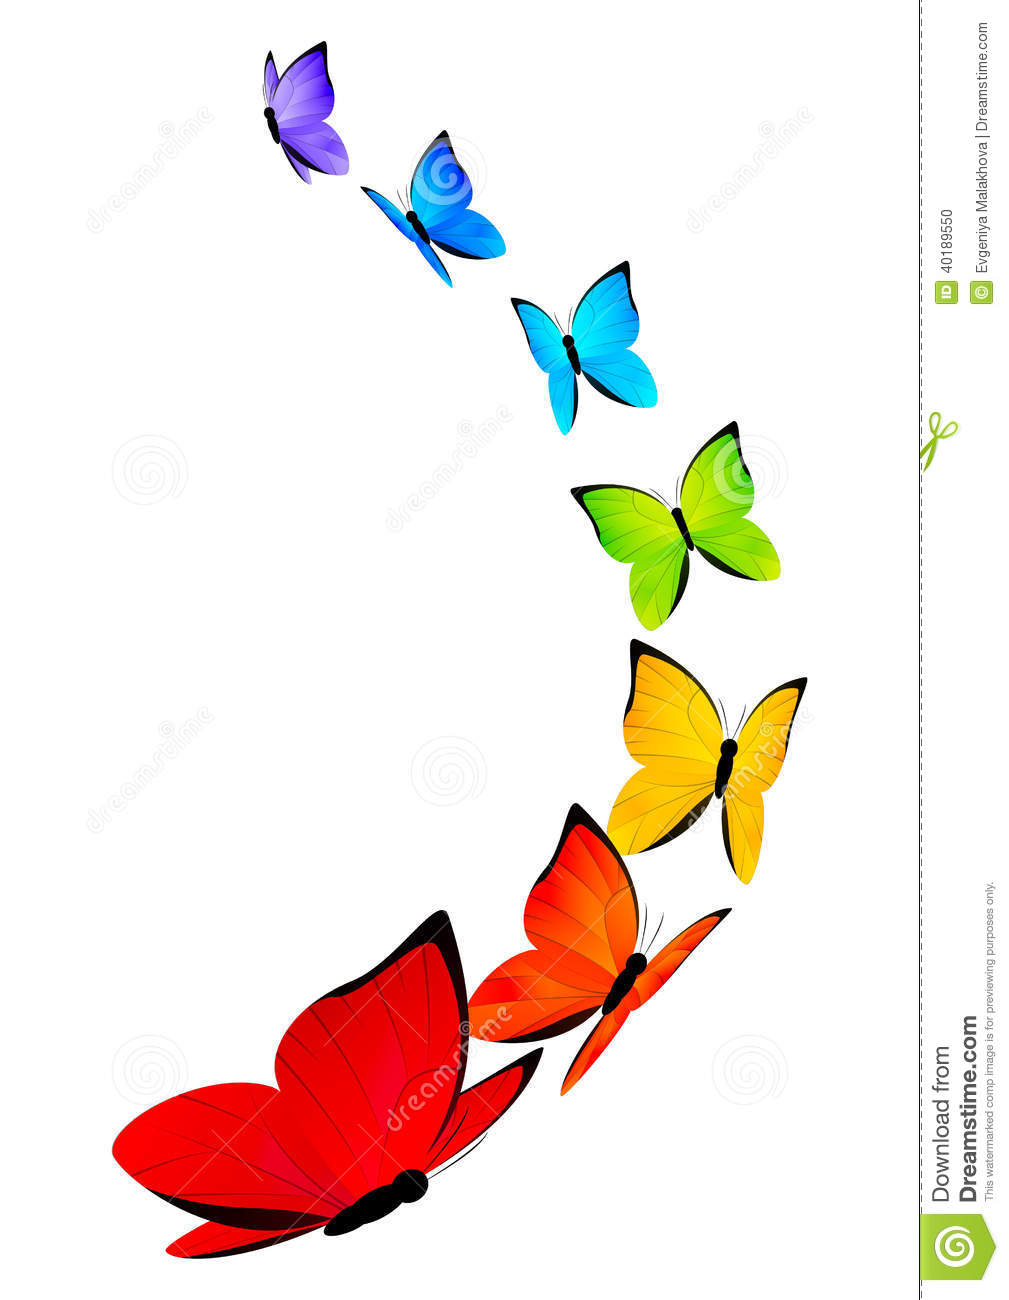 Rainbow Butterflies Background Stock Vector - Image: 40189550